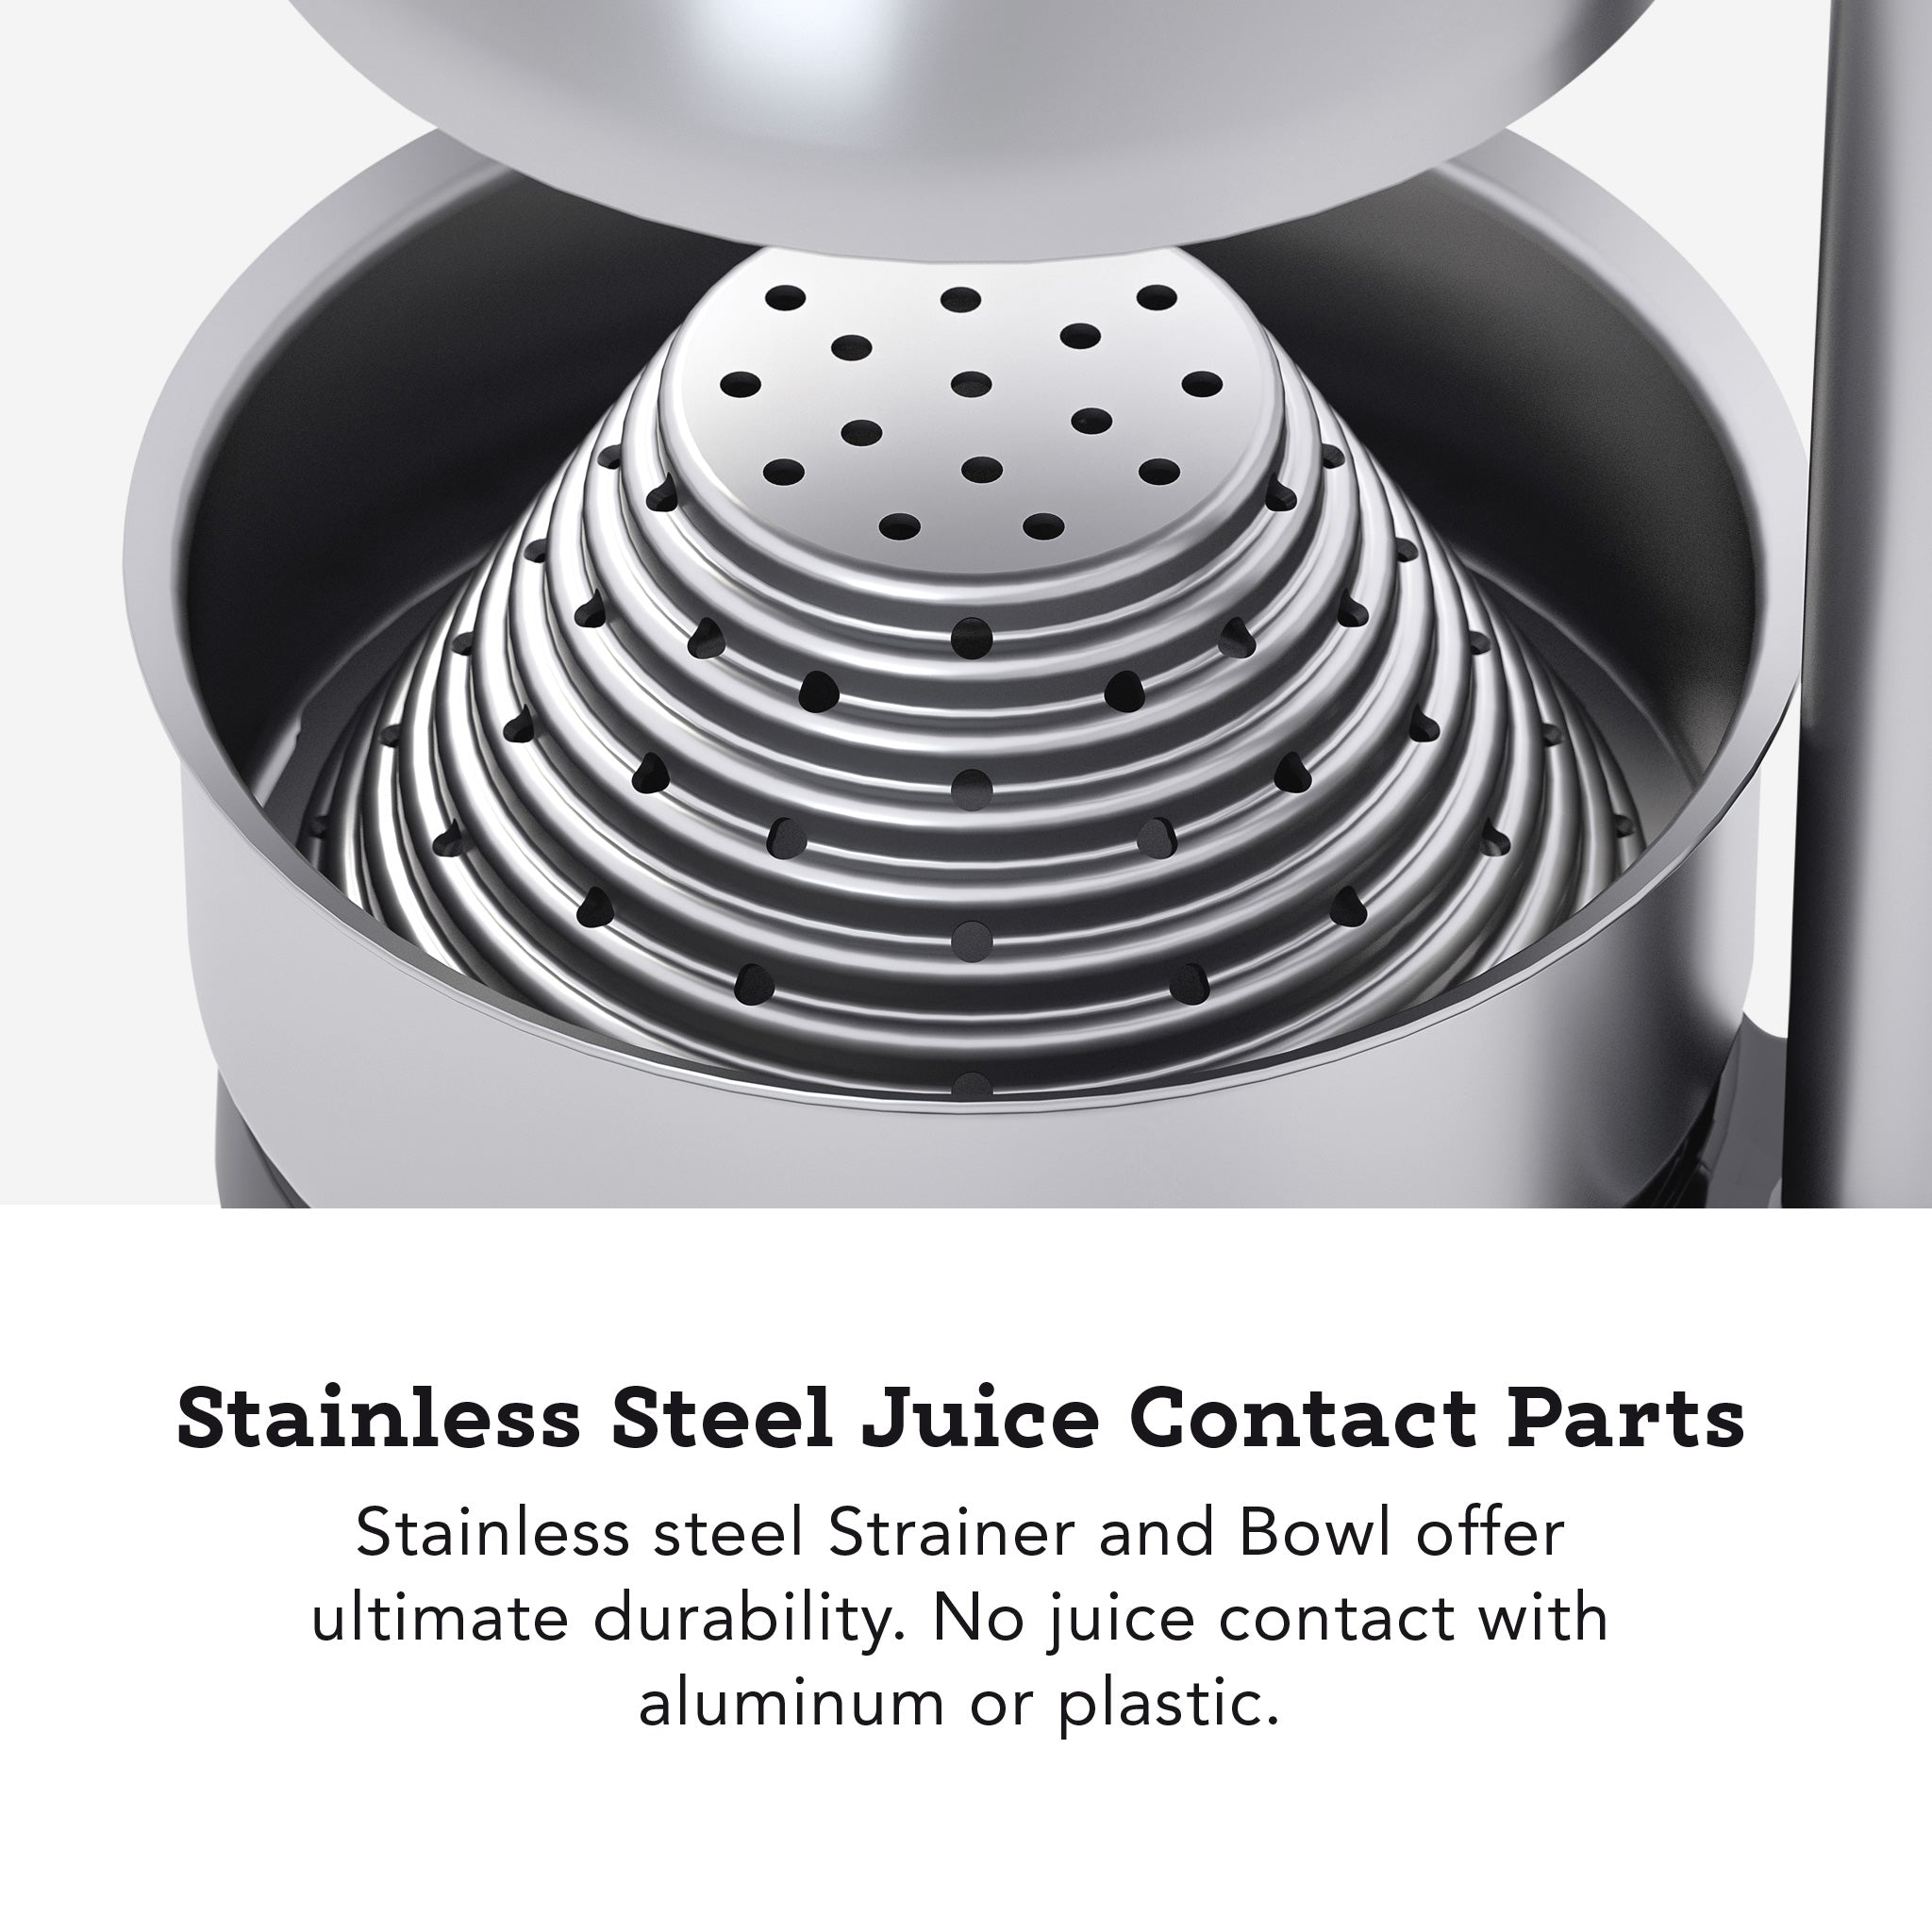 Tribest Professional Cancan Manual Juice Press MJP-100 Stainless Steel Juice Contact Parts